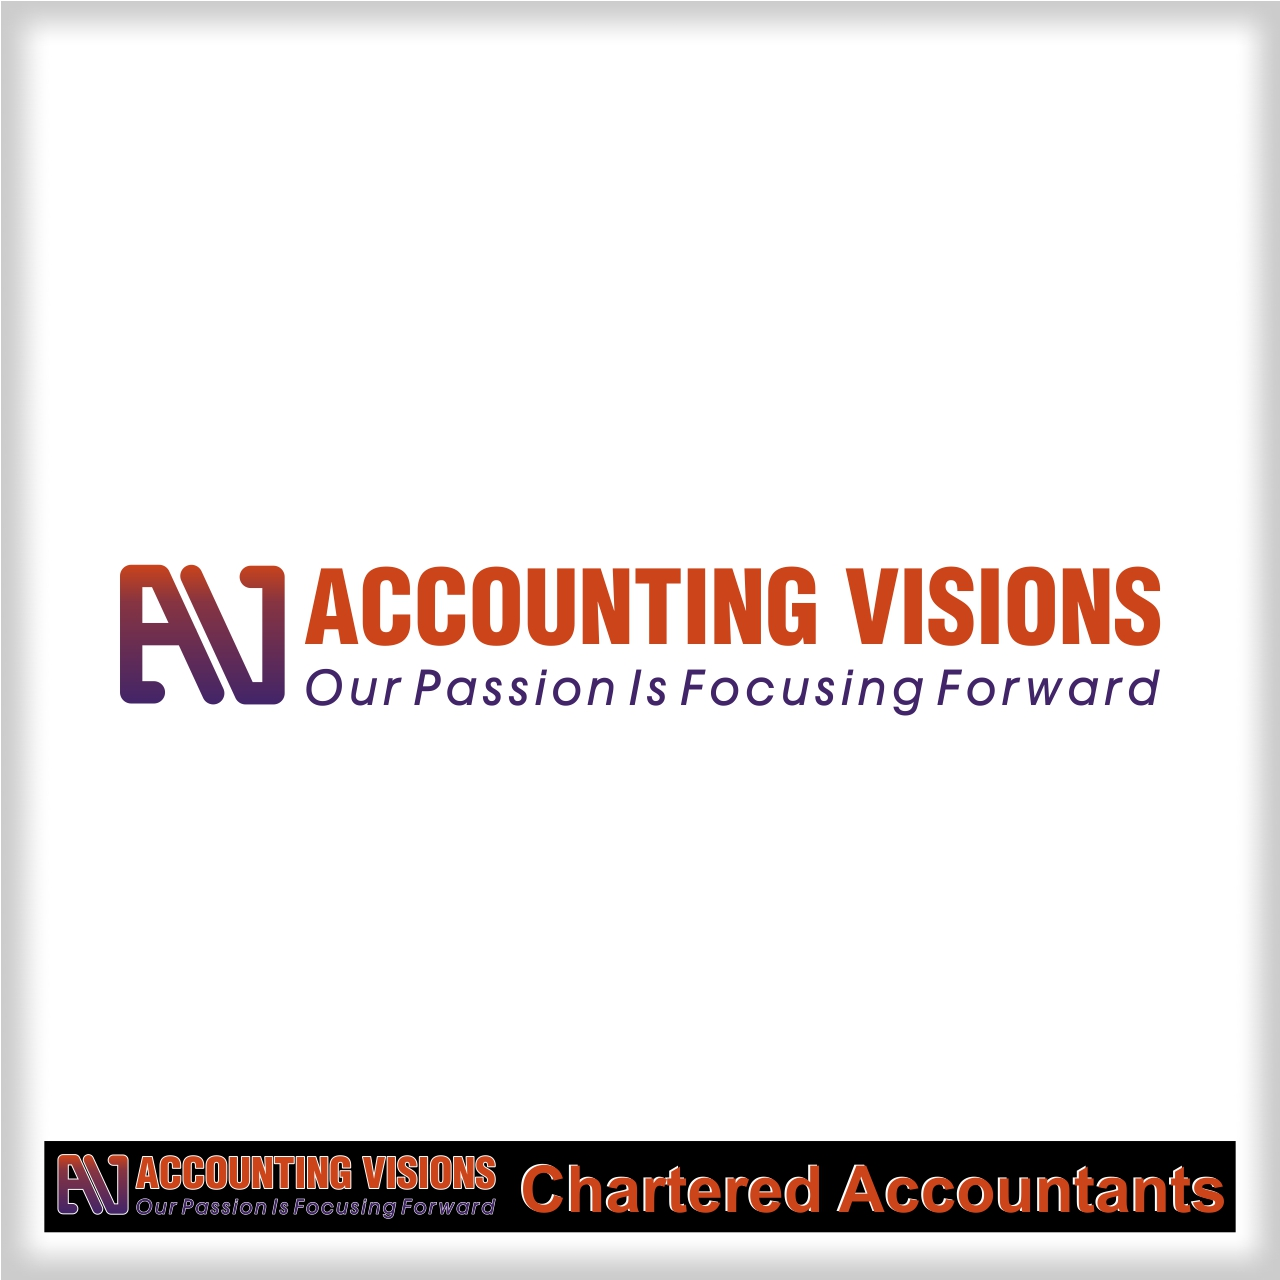 Logo Design by martinz - Entry No. 4 in the Logo Design Contest Accounting Visions.